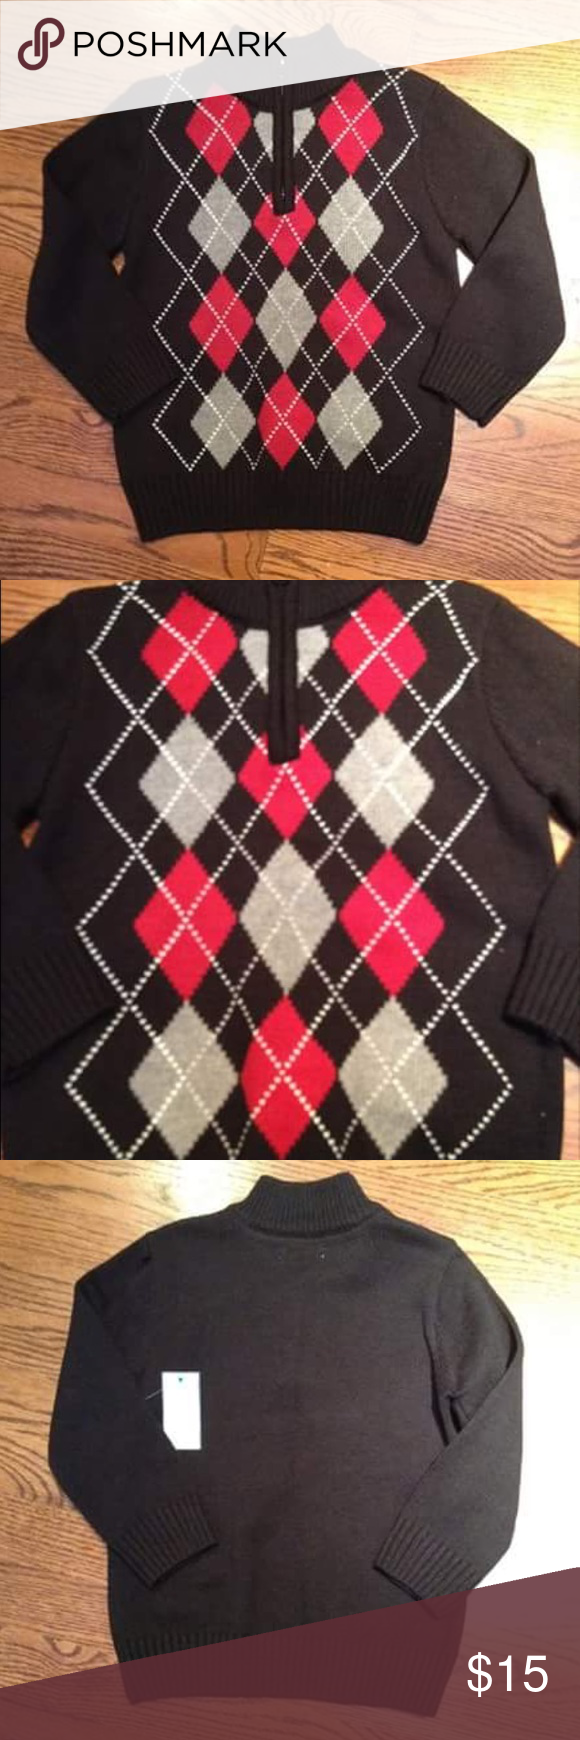 Toughskins by Sears Black Red Argyle Sweater Brand new with tags attached. Size 4T. Zipper pullover. Toughskins Shirts & Tops Sweaters